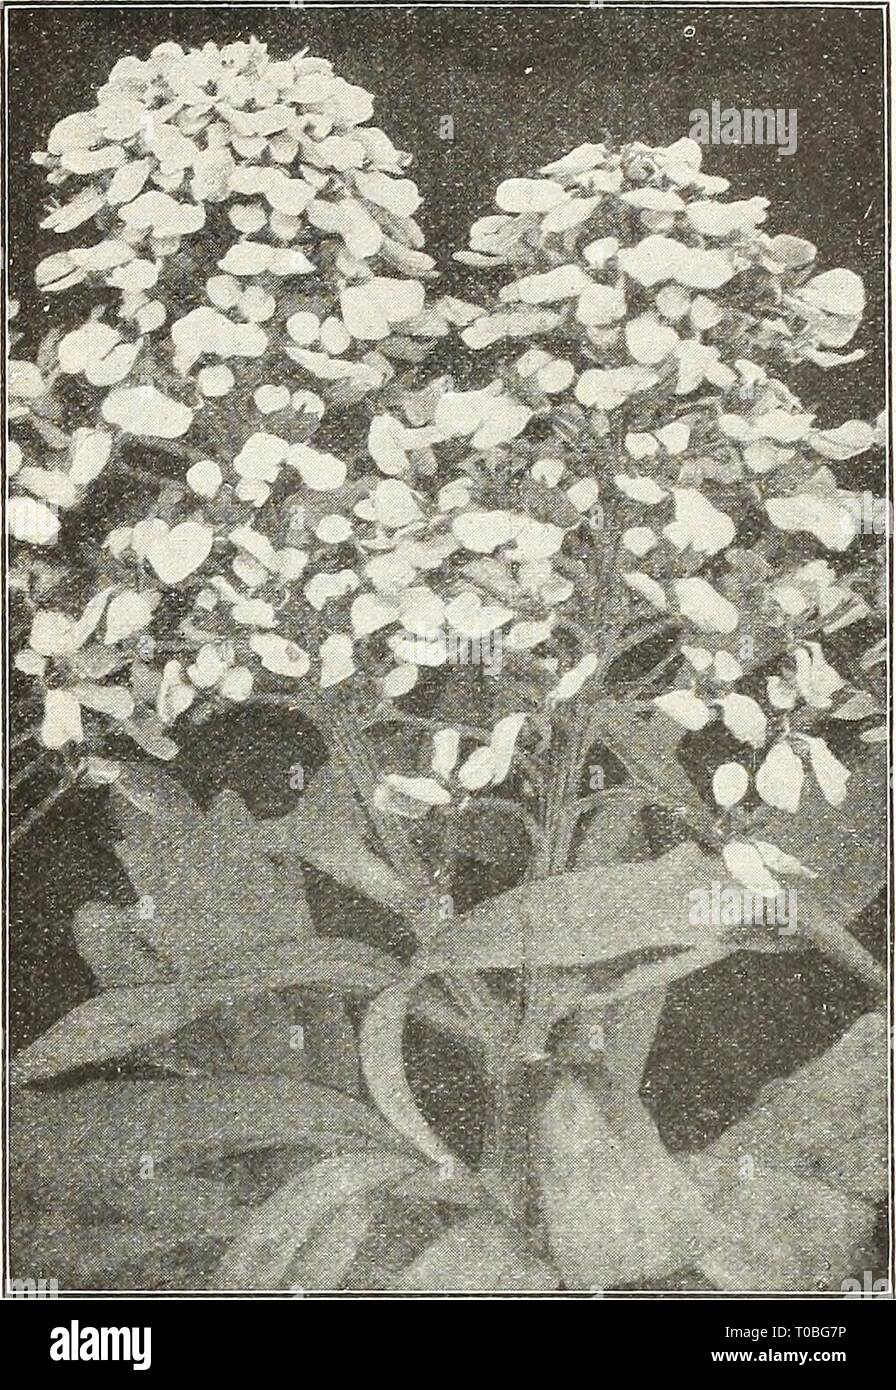 Dreer's garden book 1924 (1924) Dreer's garden book 1924 dreersgardenbook1924henr Year: 1924  /flEHRyA-DREElt^ RELIABLE FLOWER SEEDS, >HIMBEIiPIM 75 CANARY-BIRD VINE (Tropaeolum Canariense) PER PKT. 1749 A beautiful rapid growing annual climber, the charm- ing little canary-yellow blossoms bearing a fancied resemblance to a bird with its wings half expanded. The sprays of flowers are very artistic and keep when cut in good condition for a week. (See cut.) Per oz., 40cts SO 05 CANDYTUFT Iberis Umbellata) The annual Candytufts are universally known and cultivated, and considered indispensable - Stock Image